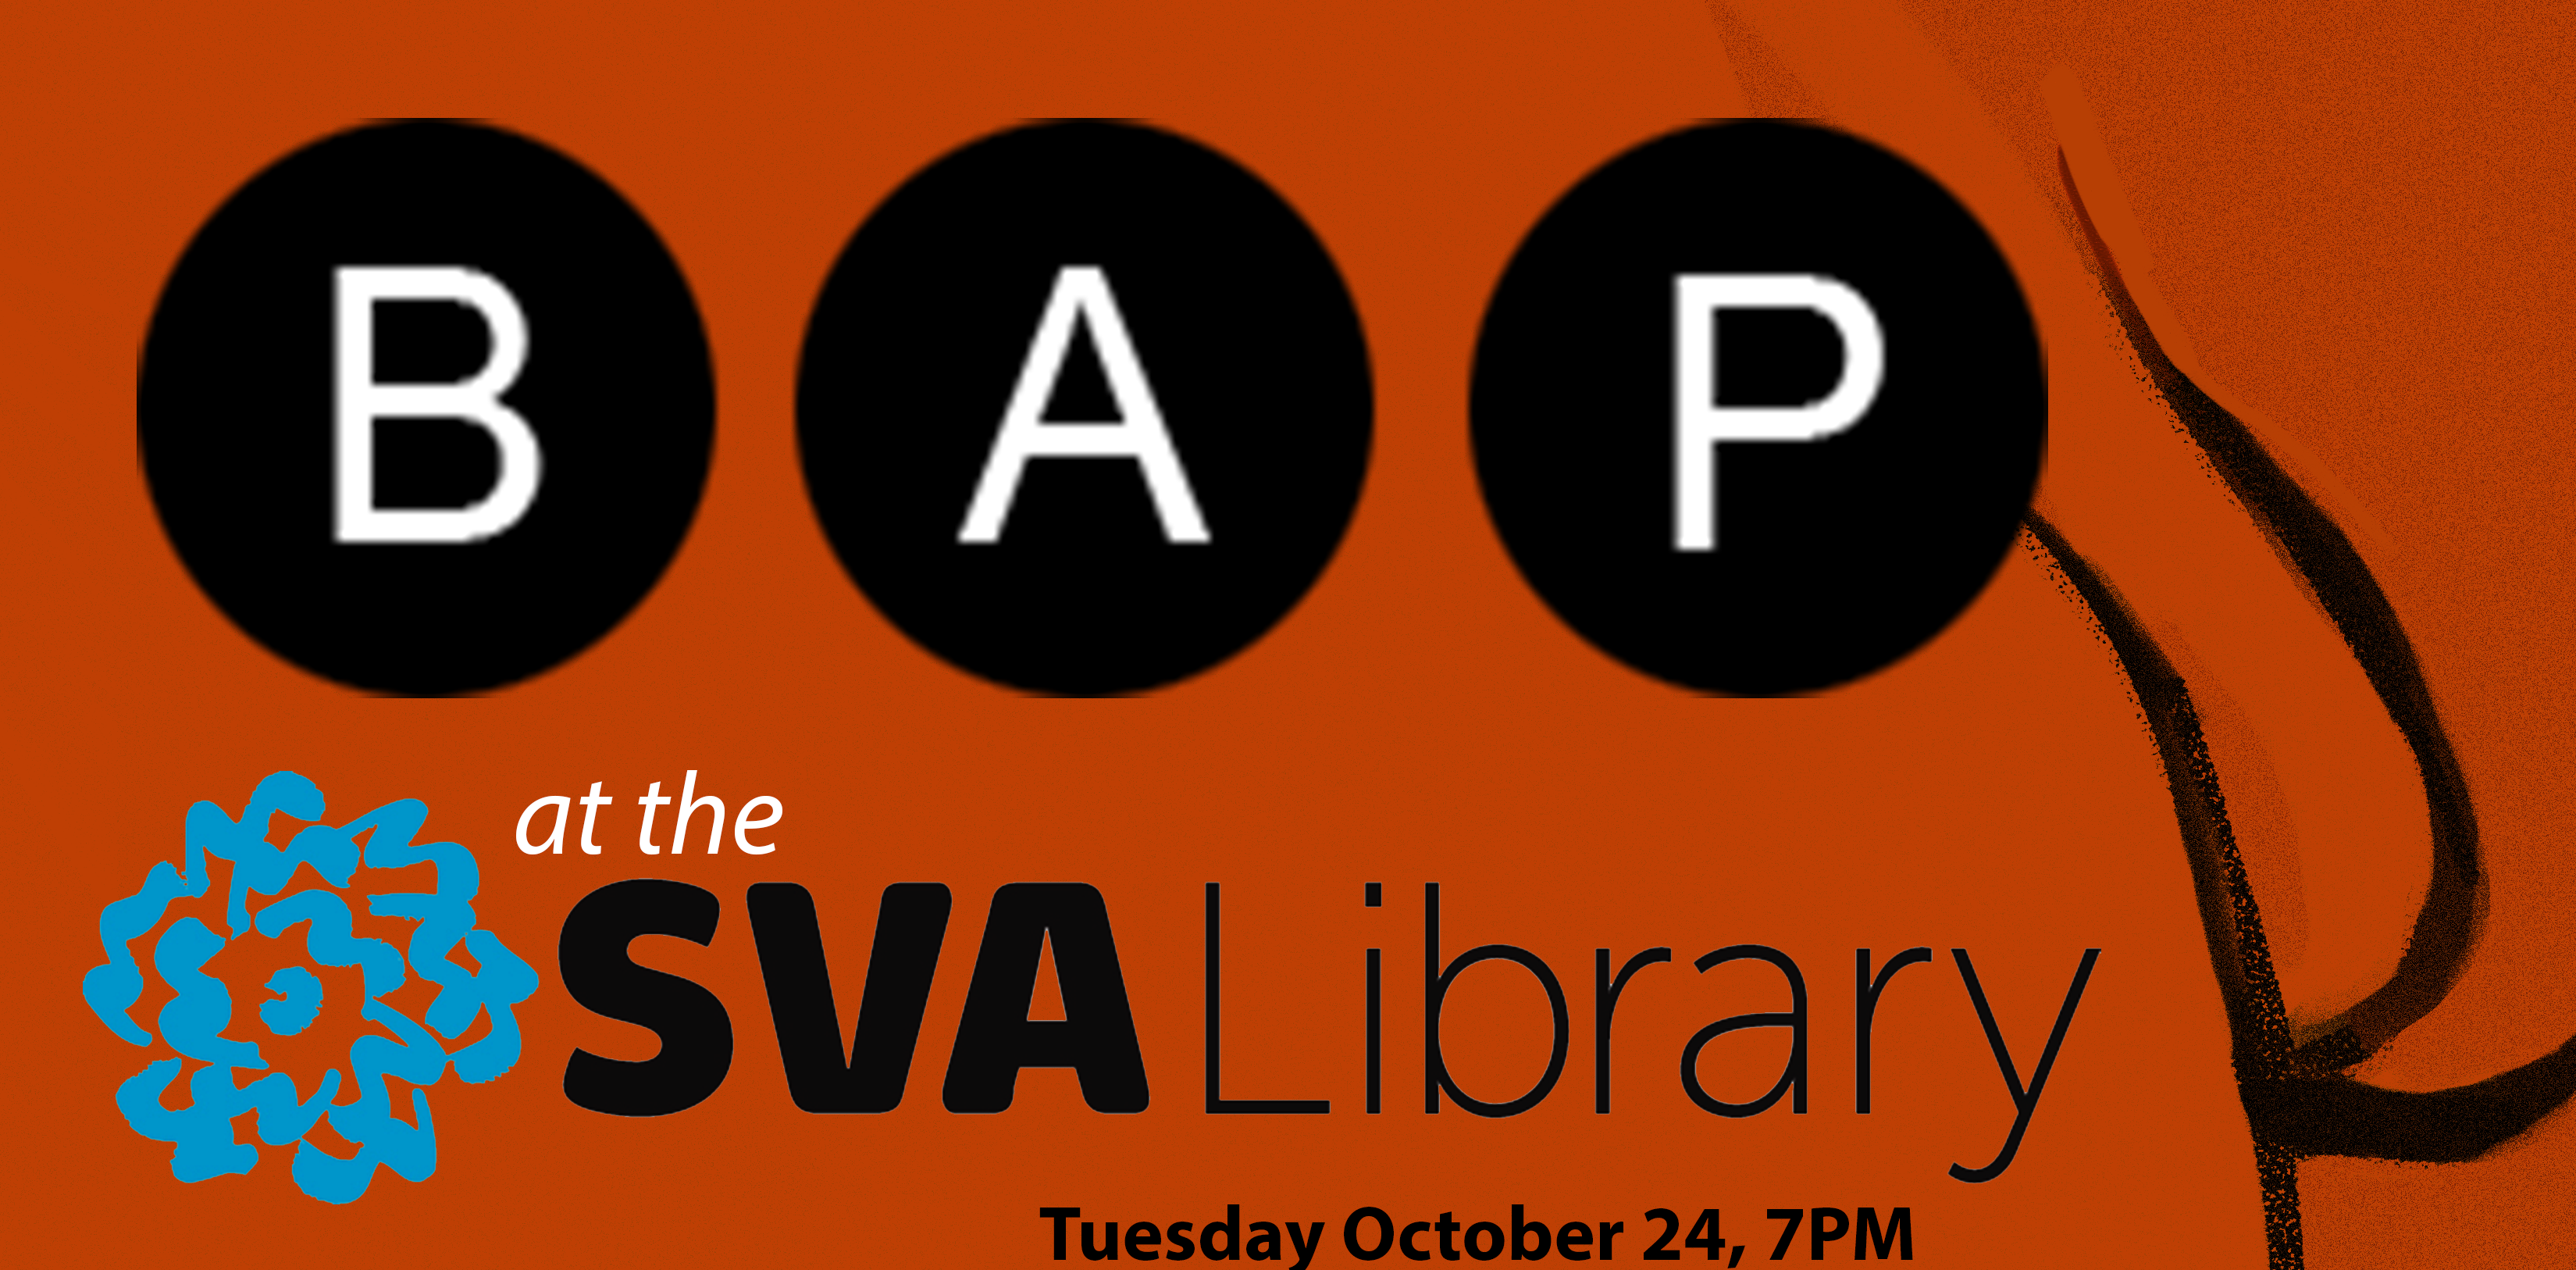 BAP at the SVA Library